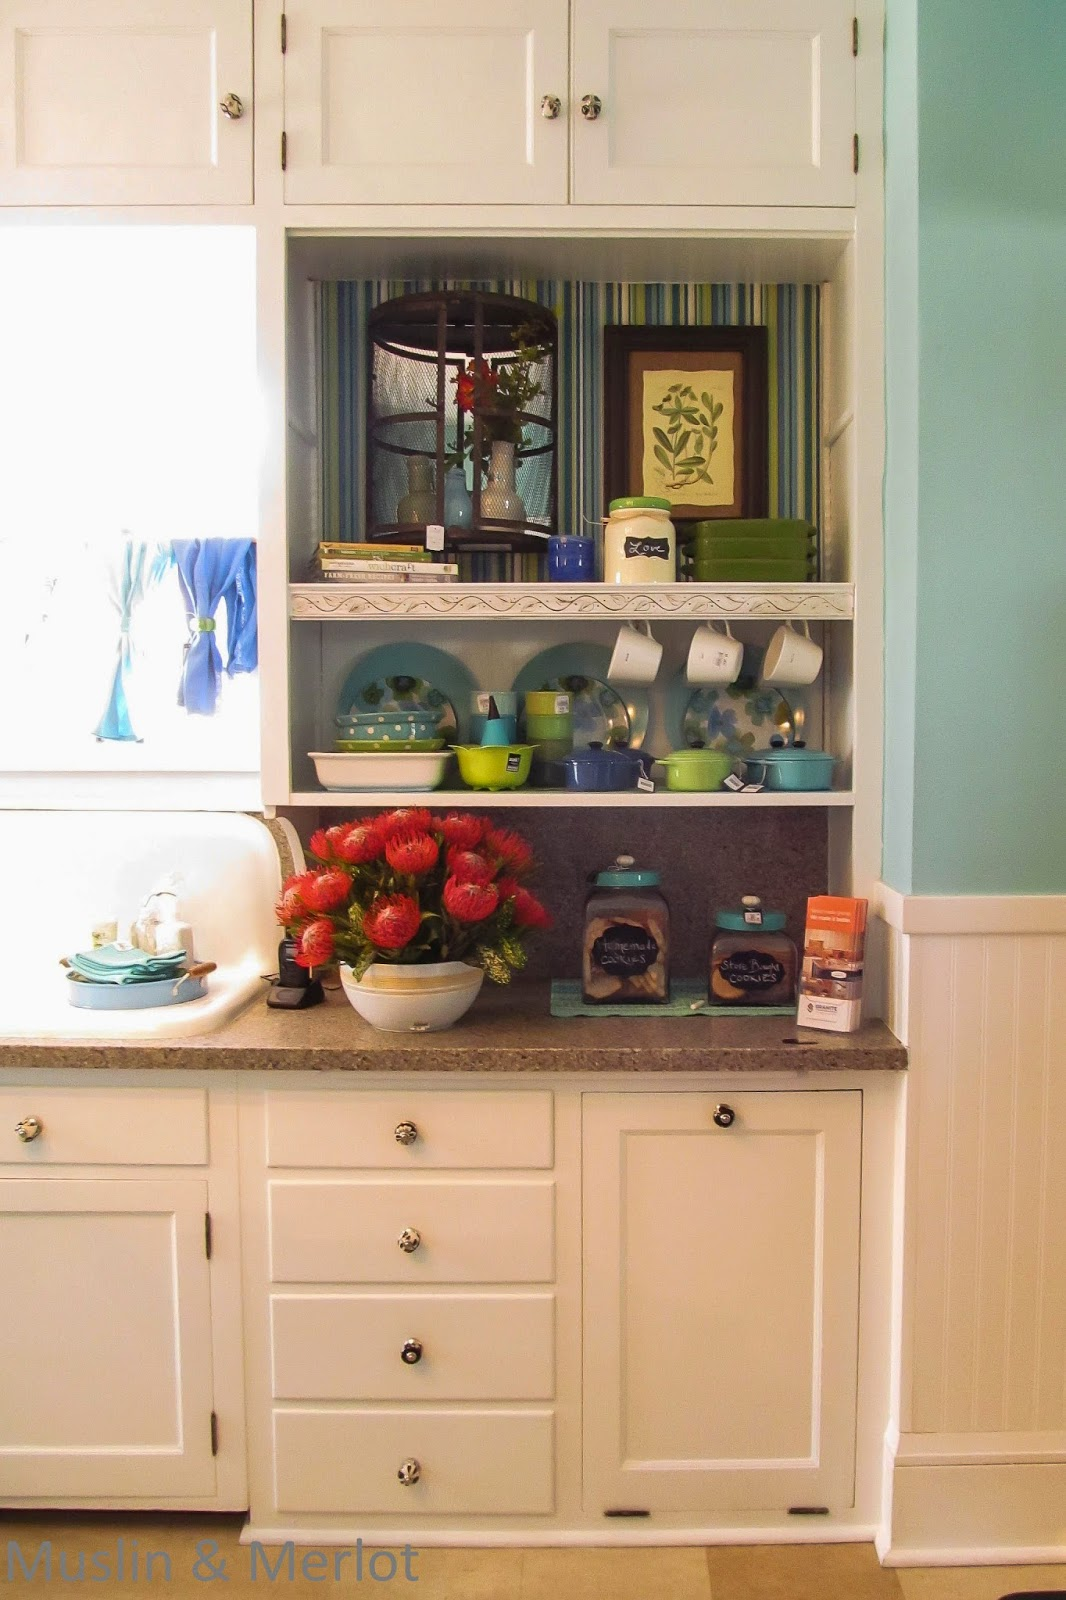 Love the blue and whites! And how neat the kitchen cupboards are. This wouldn't work well at my house . . .